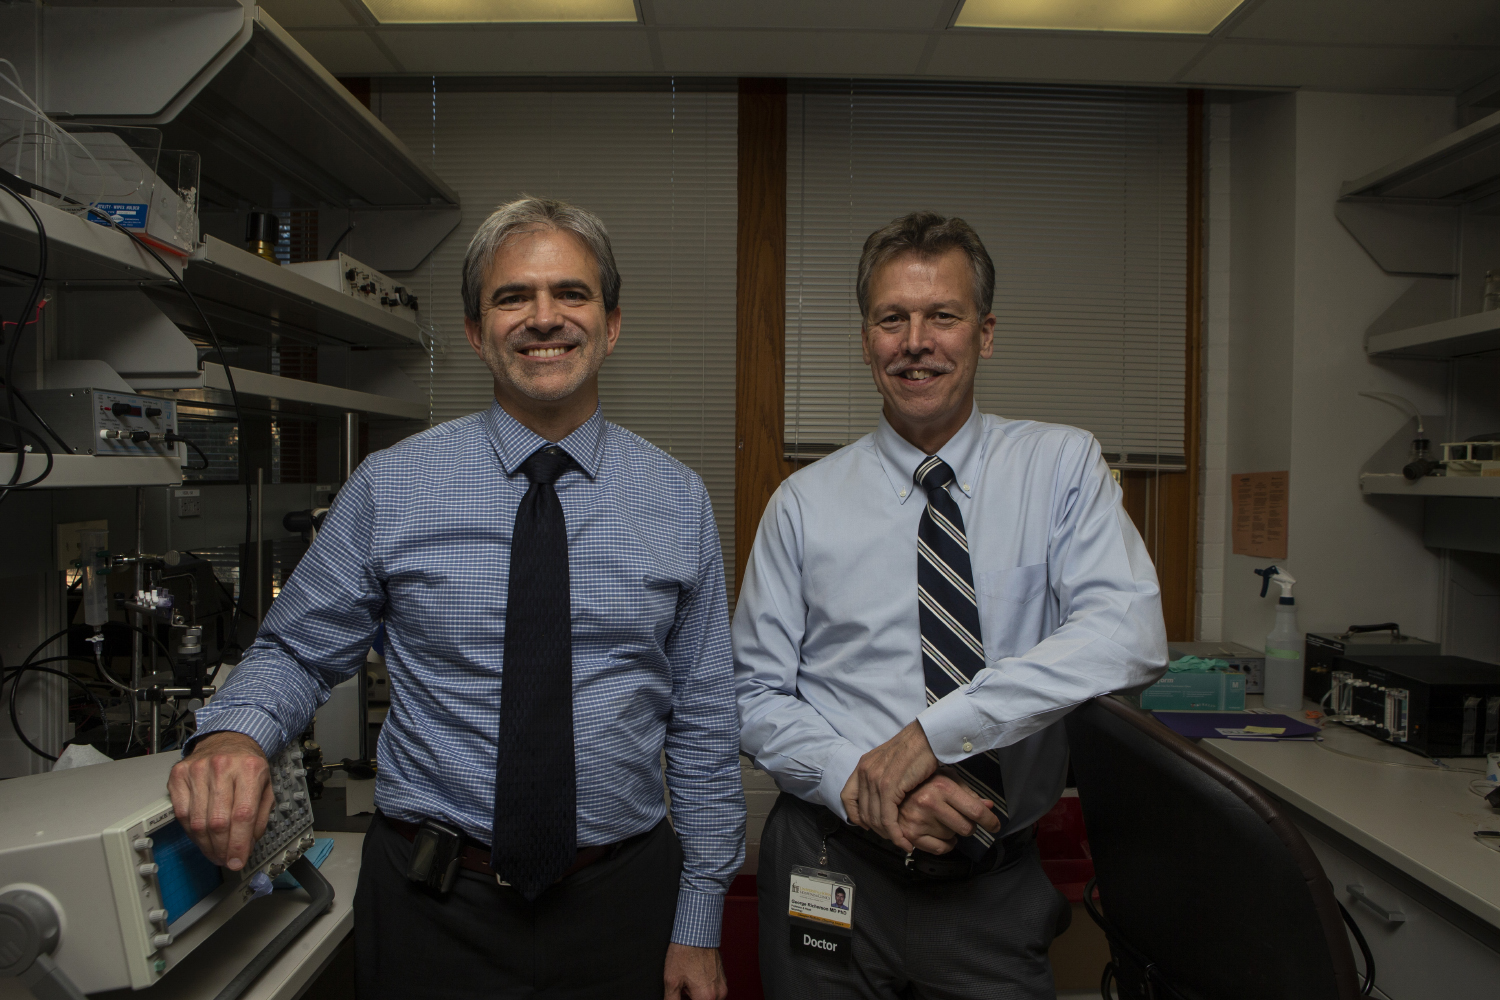 Brian Gehlbach (left) and George Richerson (right) pose for a portrait in the Medical Laboratories on Monday, Oct. 7, 2019. Gehlbach and Richarson have received a three million dollar research grant to continue their research into epilepsy.